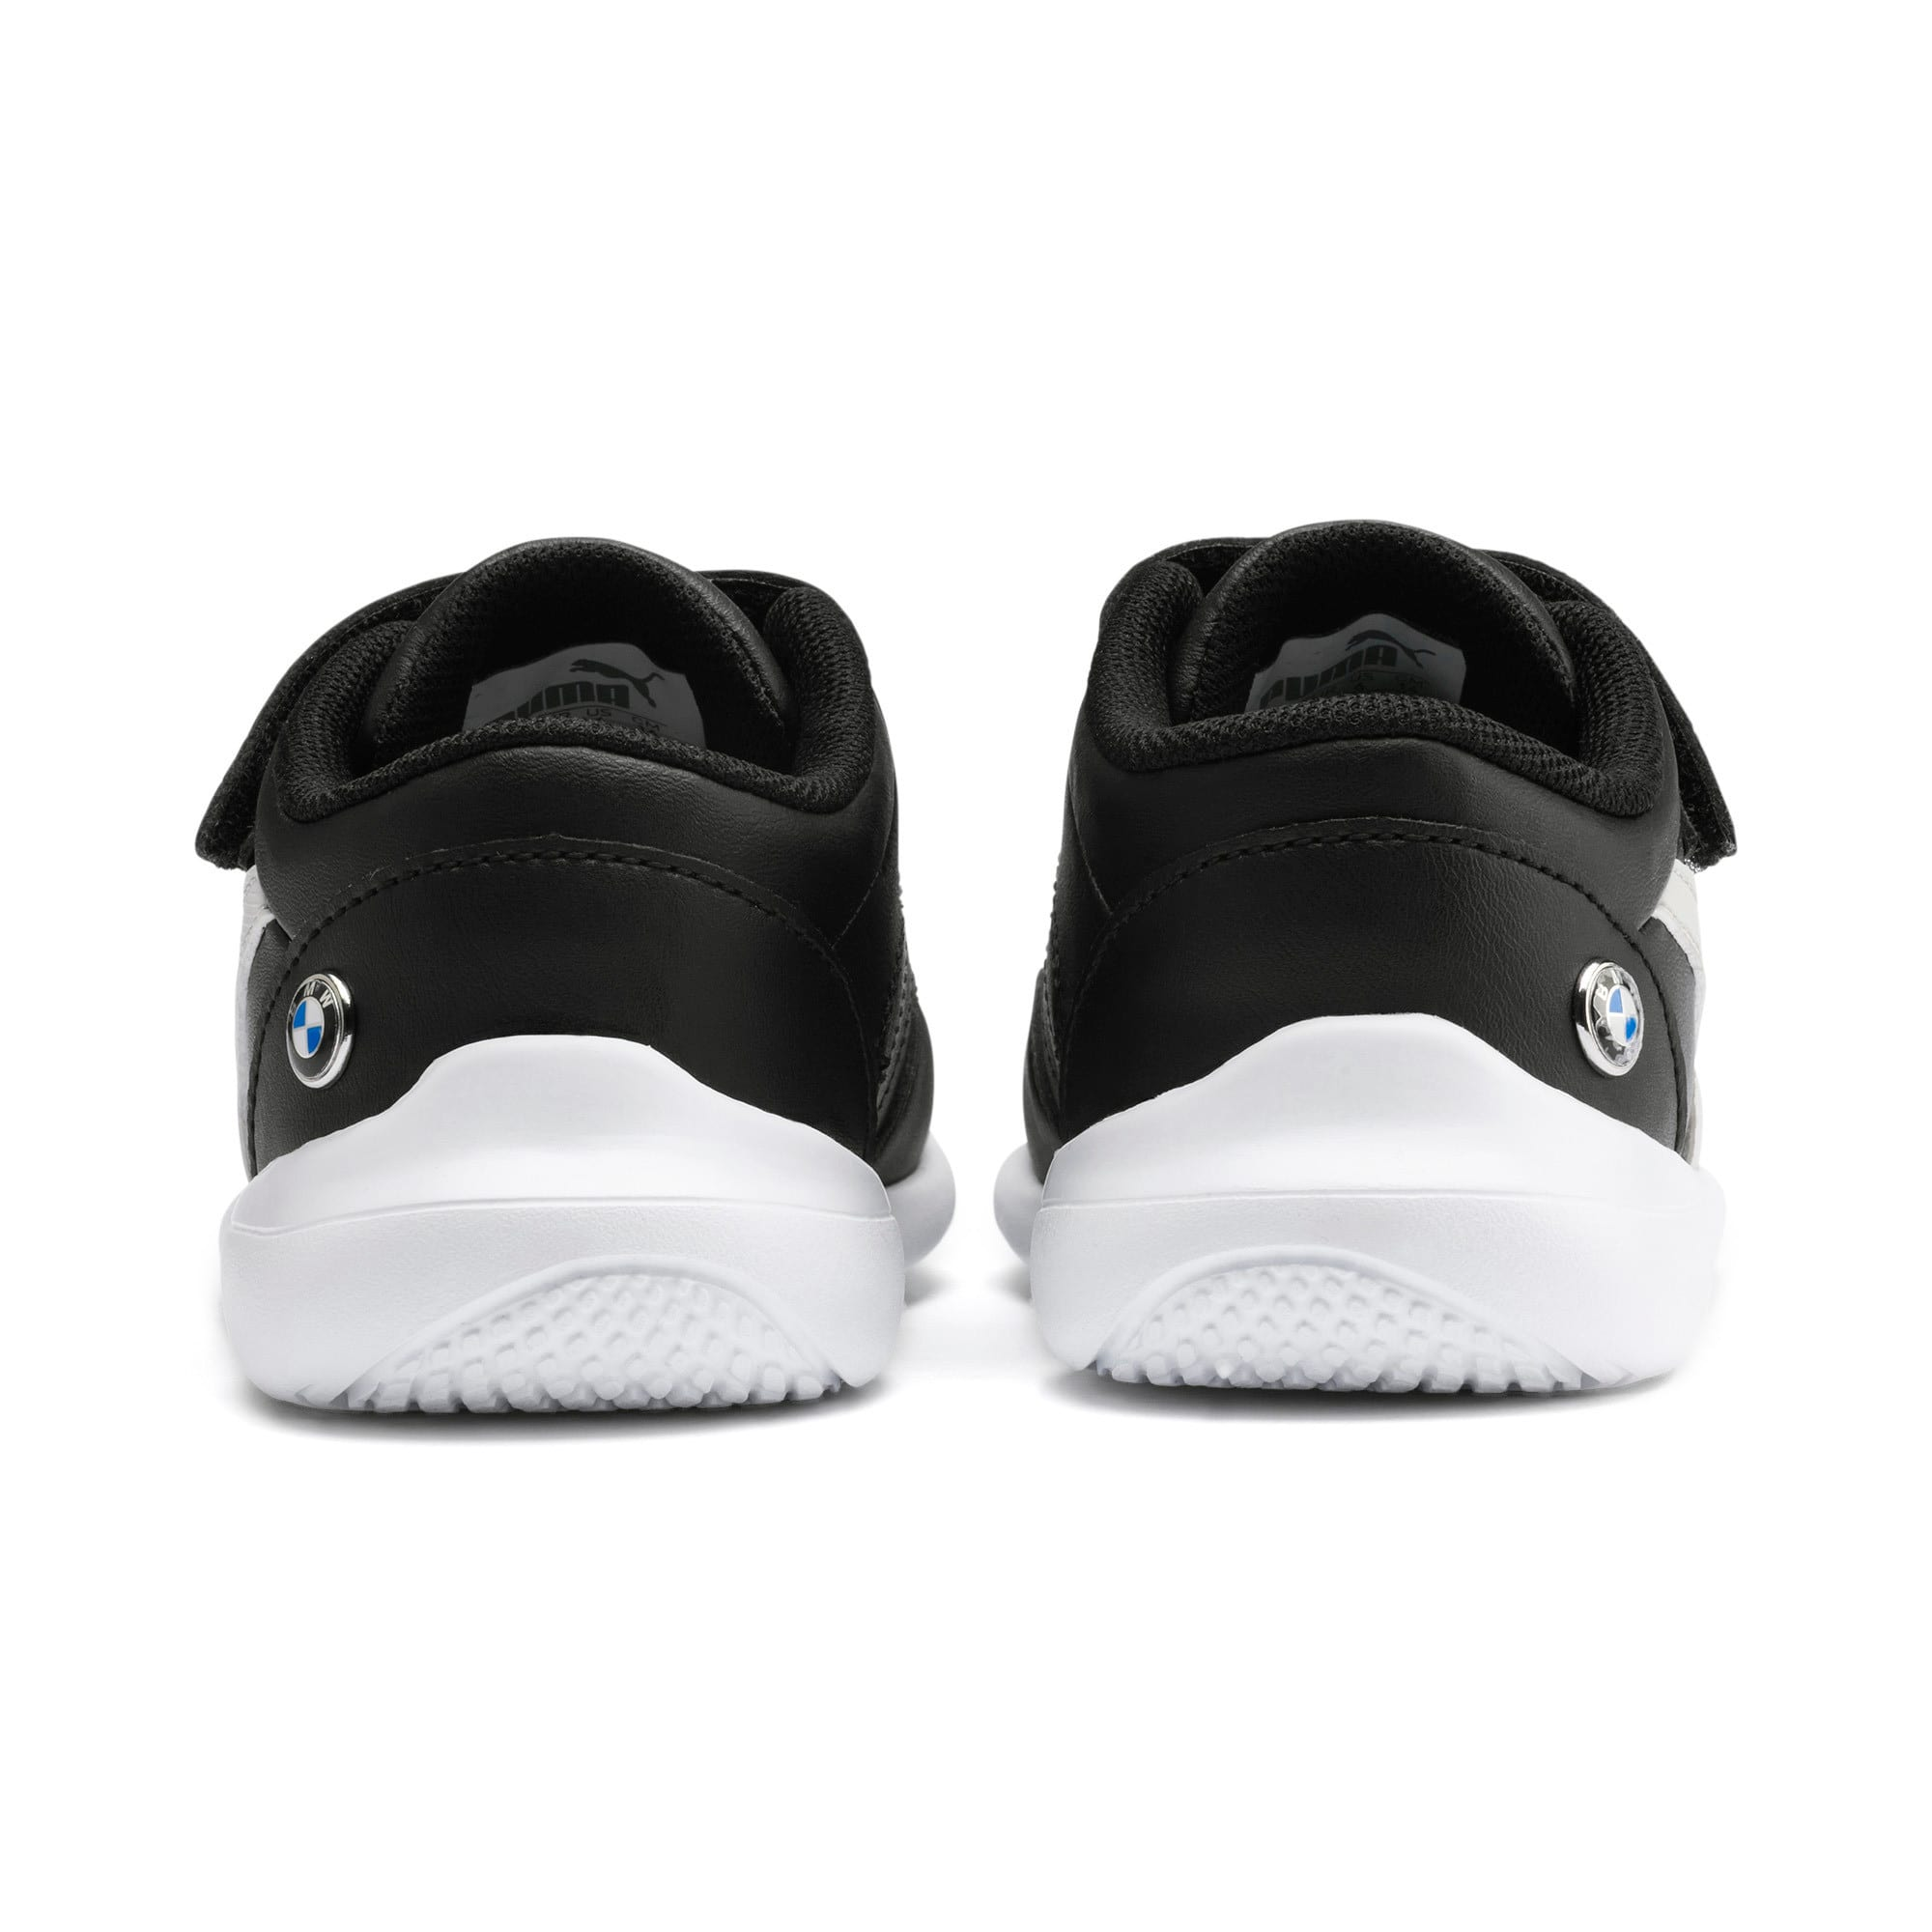 Thumbnail 3 of BMW M Motorsport Kart Cat III Toddler Shoes, Puma Black-Gray Violet, medium